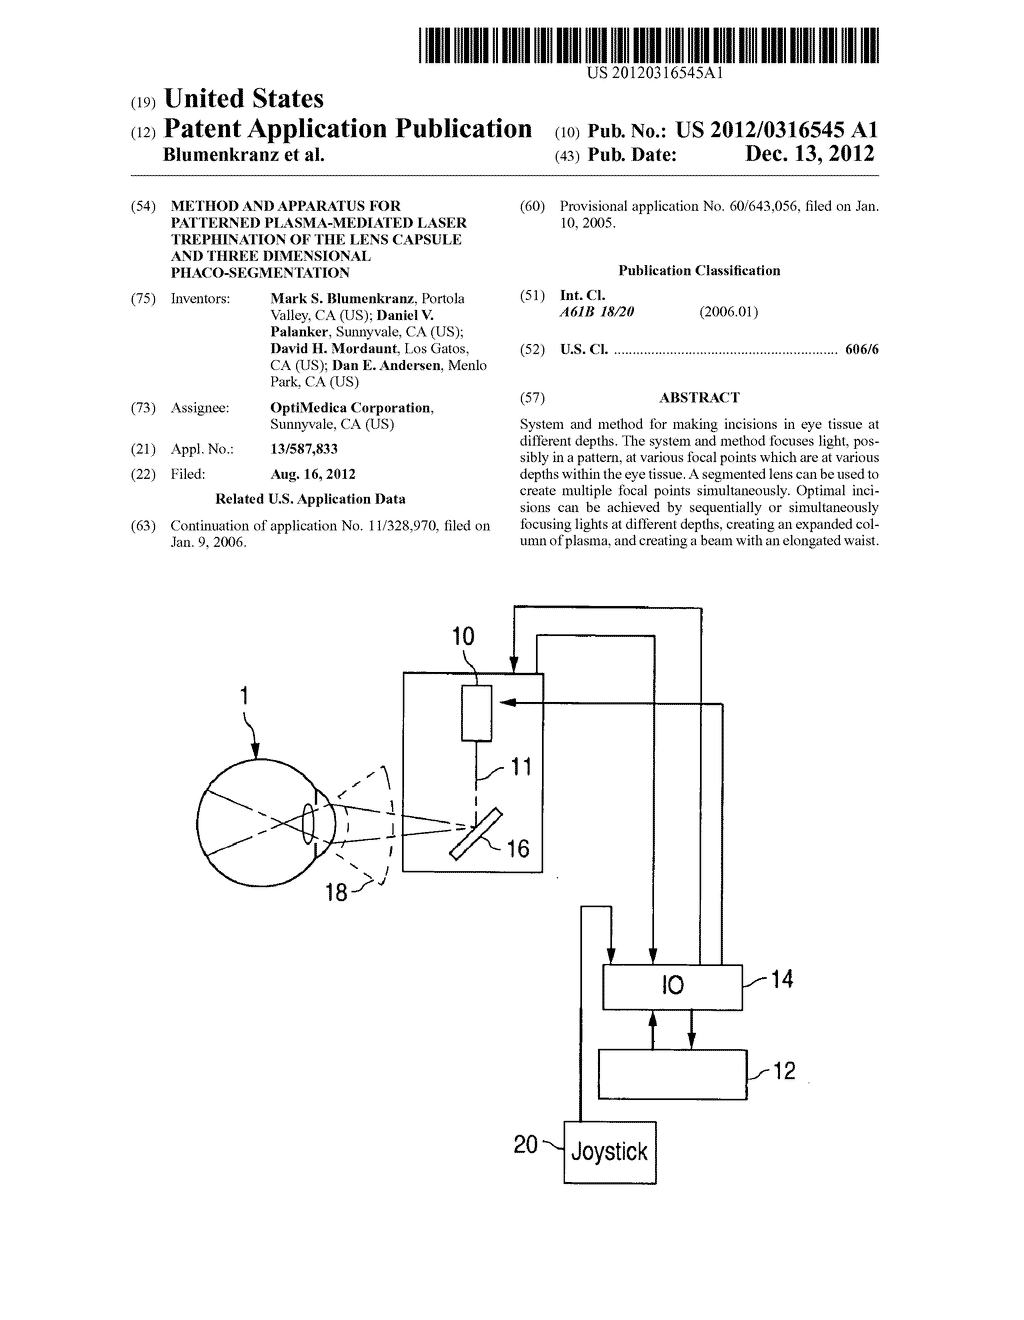 METHOD AND APPARATUS FOR PATTERNED PLASMA-MEDIATED LASER TREPHINATION OF     THE LENS CAPSULE AND THREE DIMENSIONAL PHACO-SEGMENTATION - diagram, schematic, and image 01